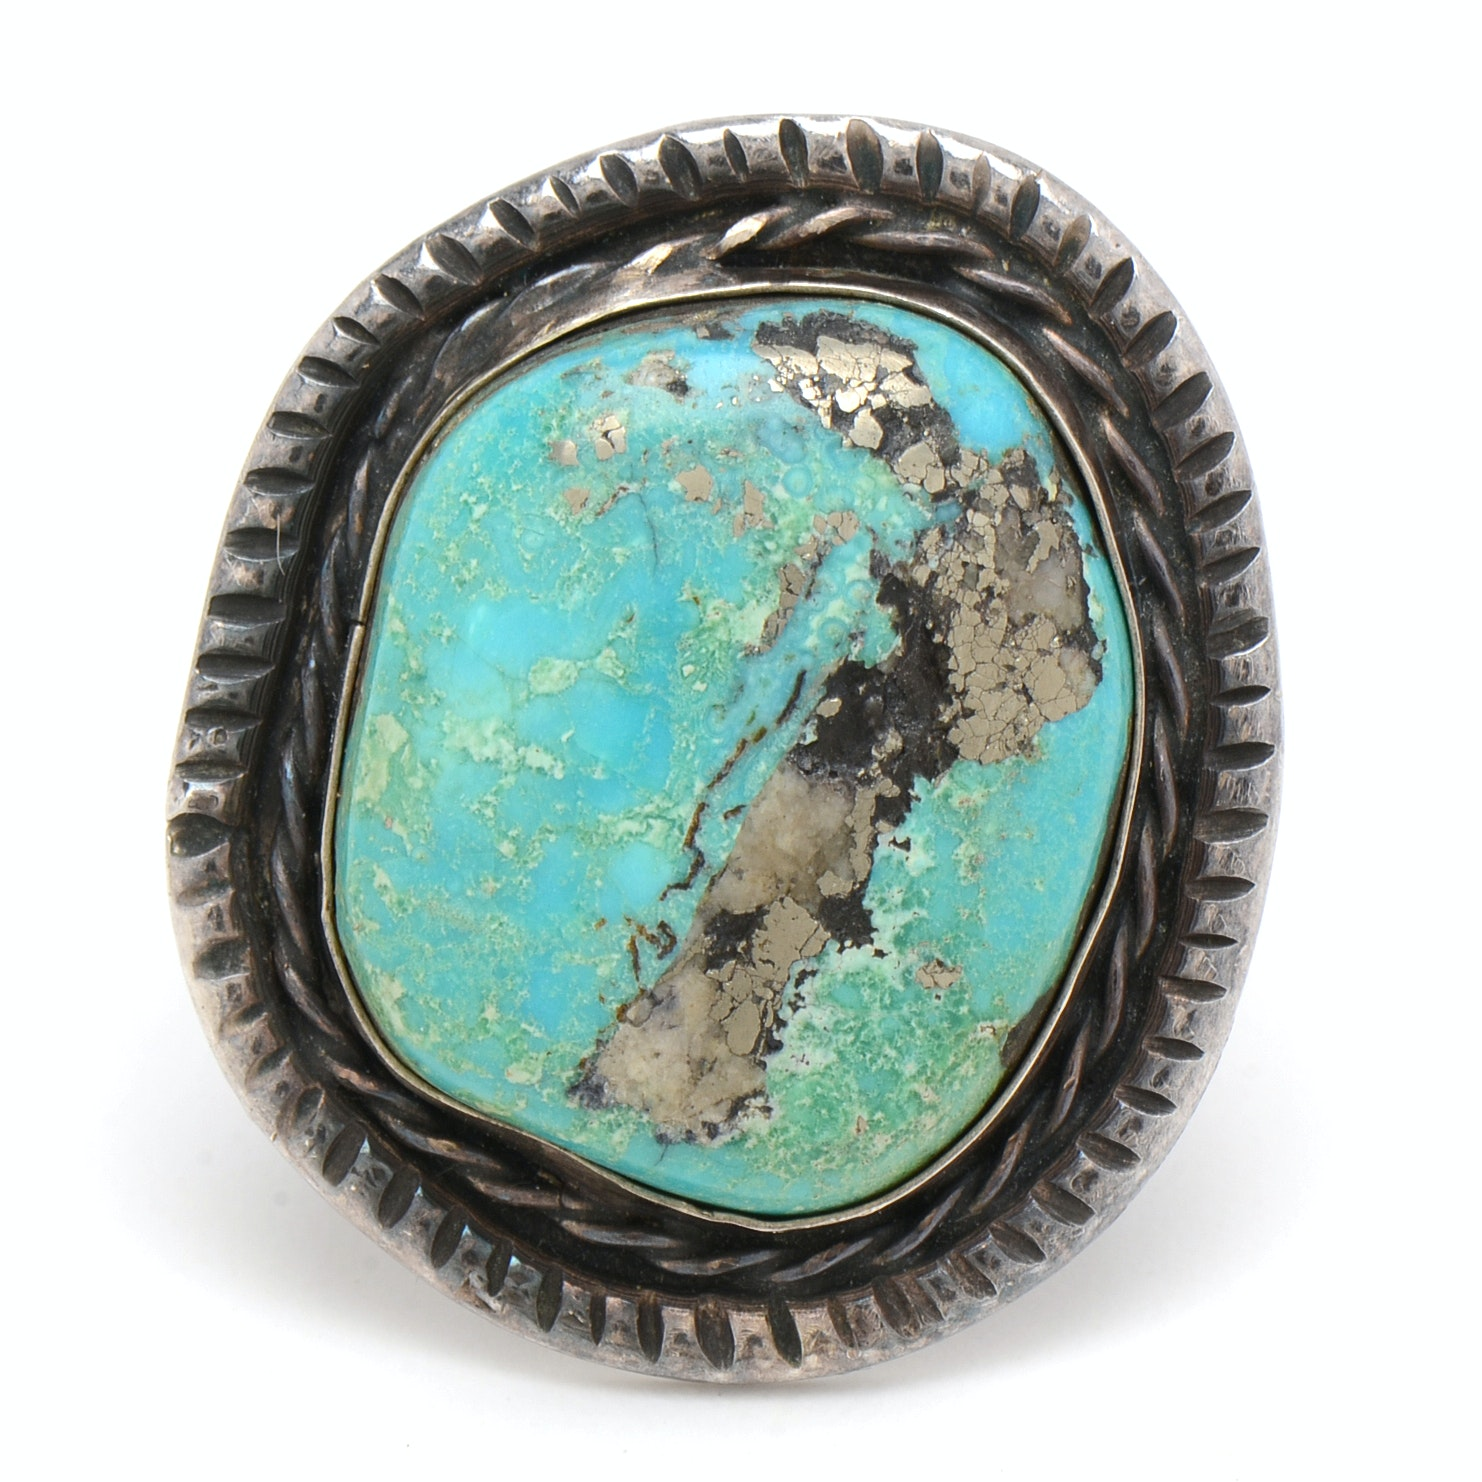 Native American Style Sterling Silver Ring with Large Turquoise Center Stone